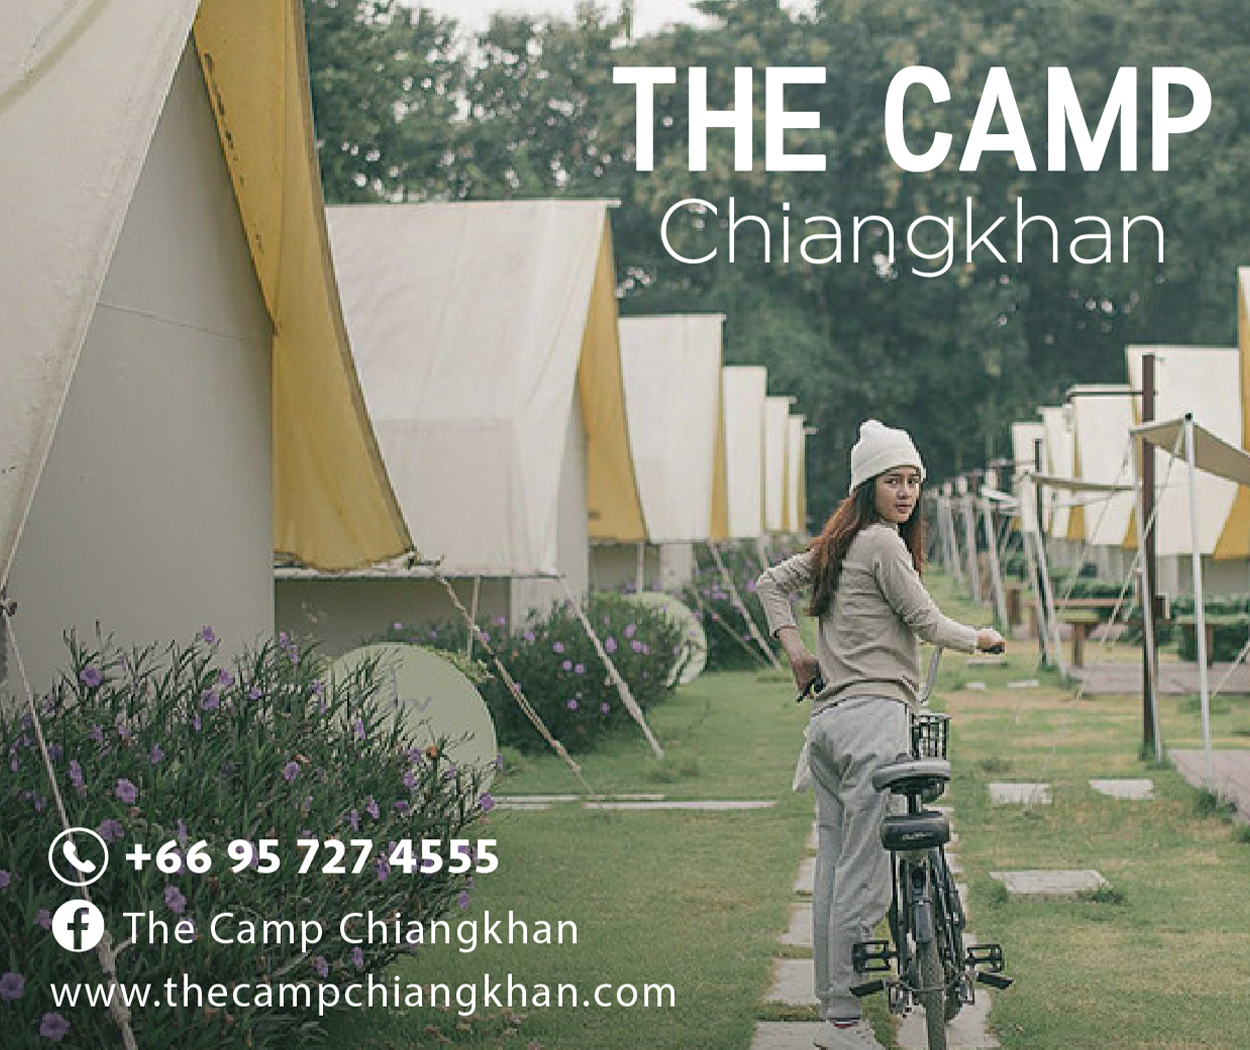 The Camp Chiangkhan